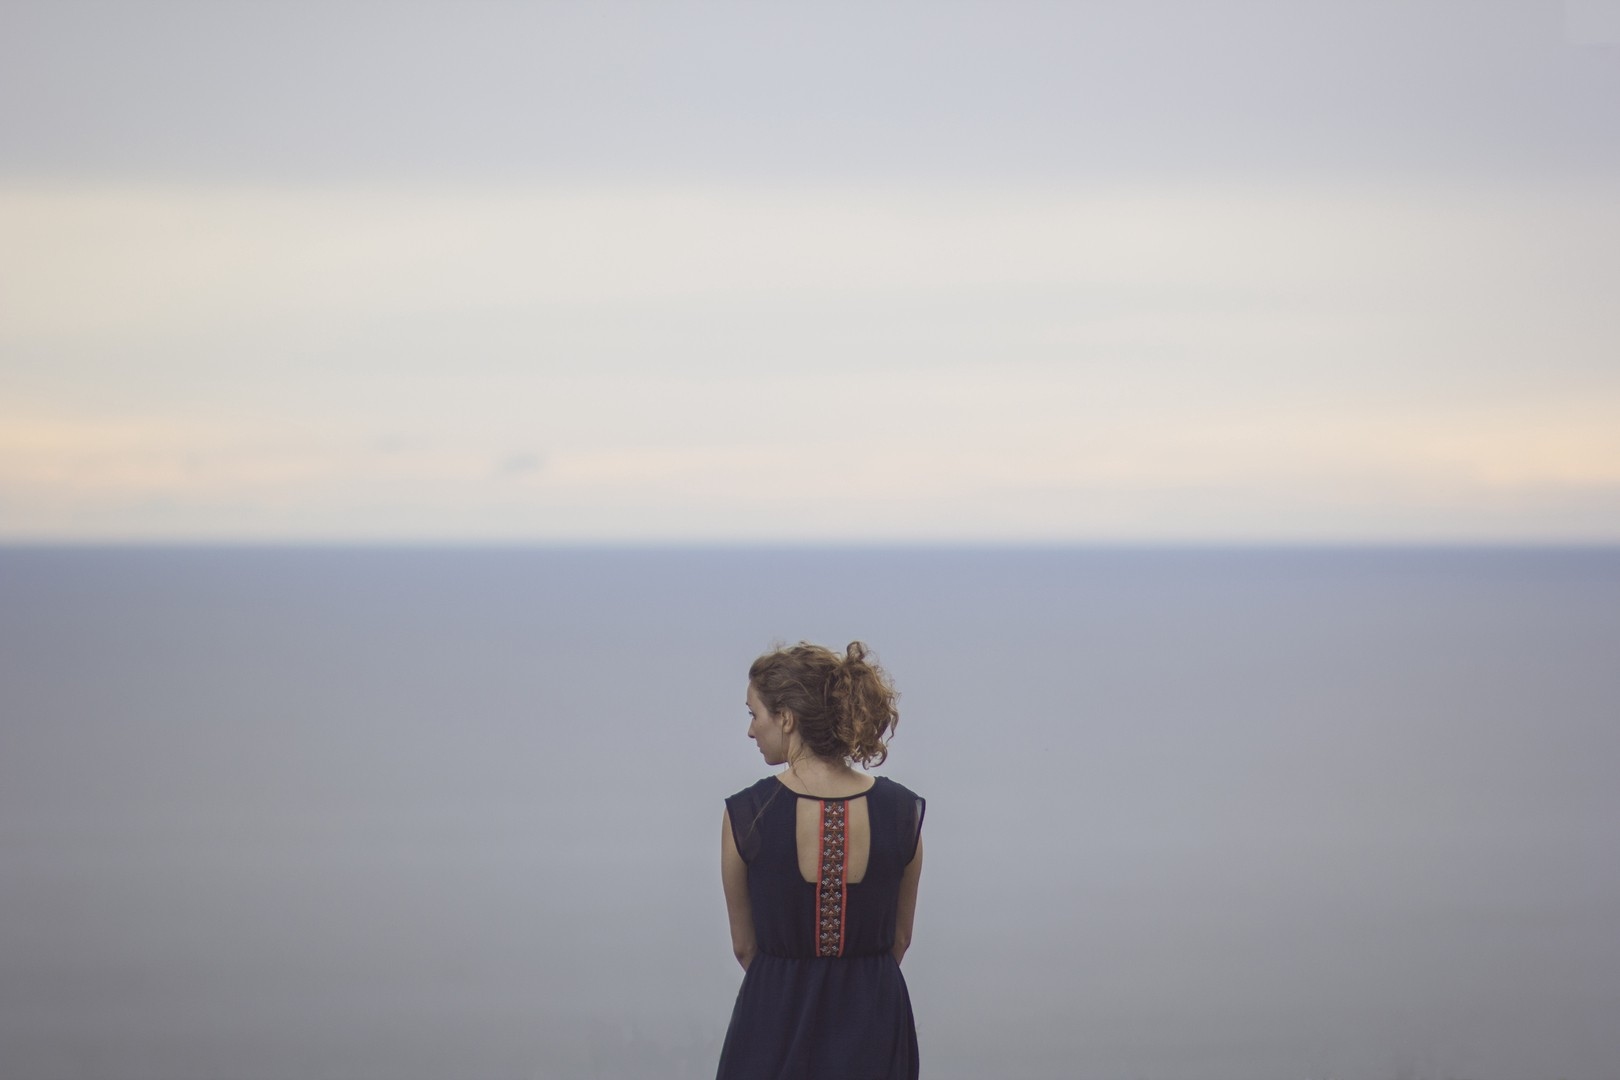 Woman stands in front of a grey ocean with her back to the camera